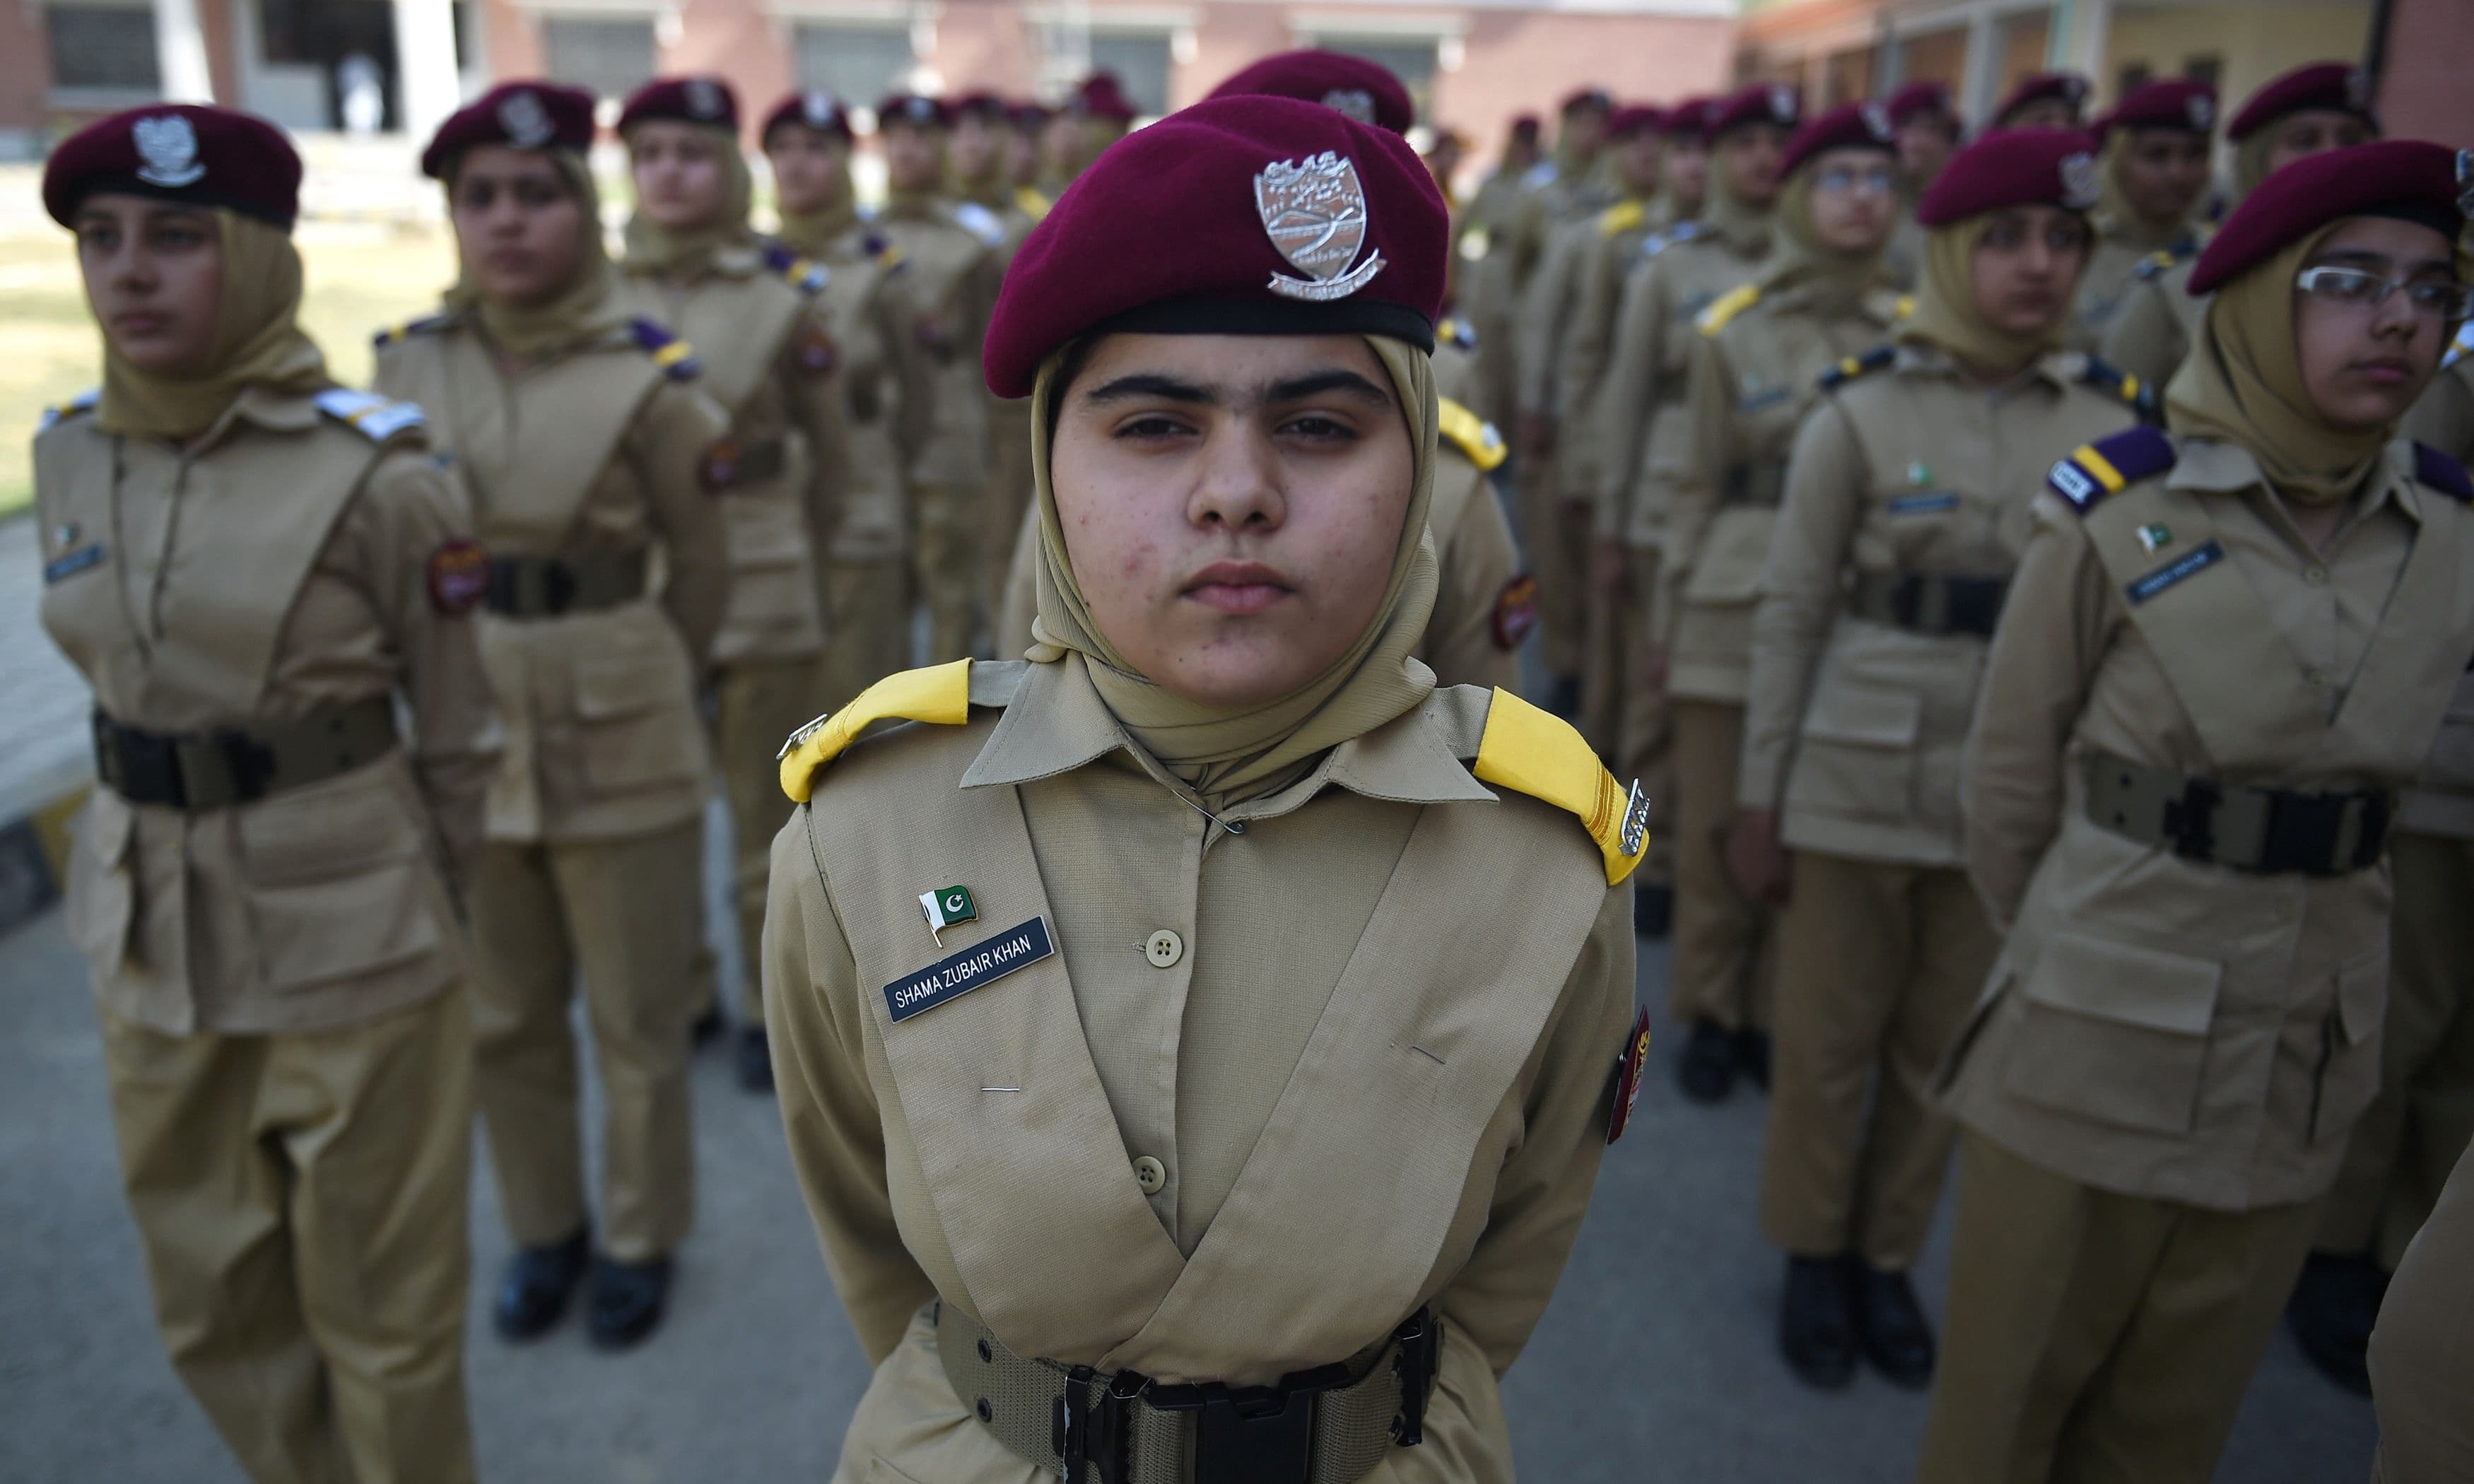 Cadets parade at the cadet college. —AFP